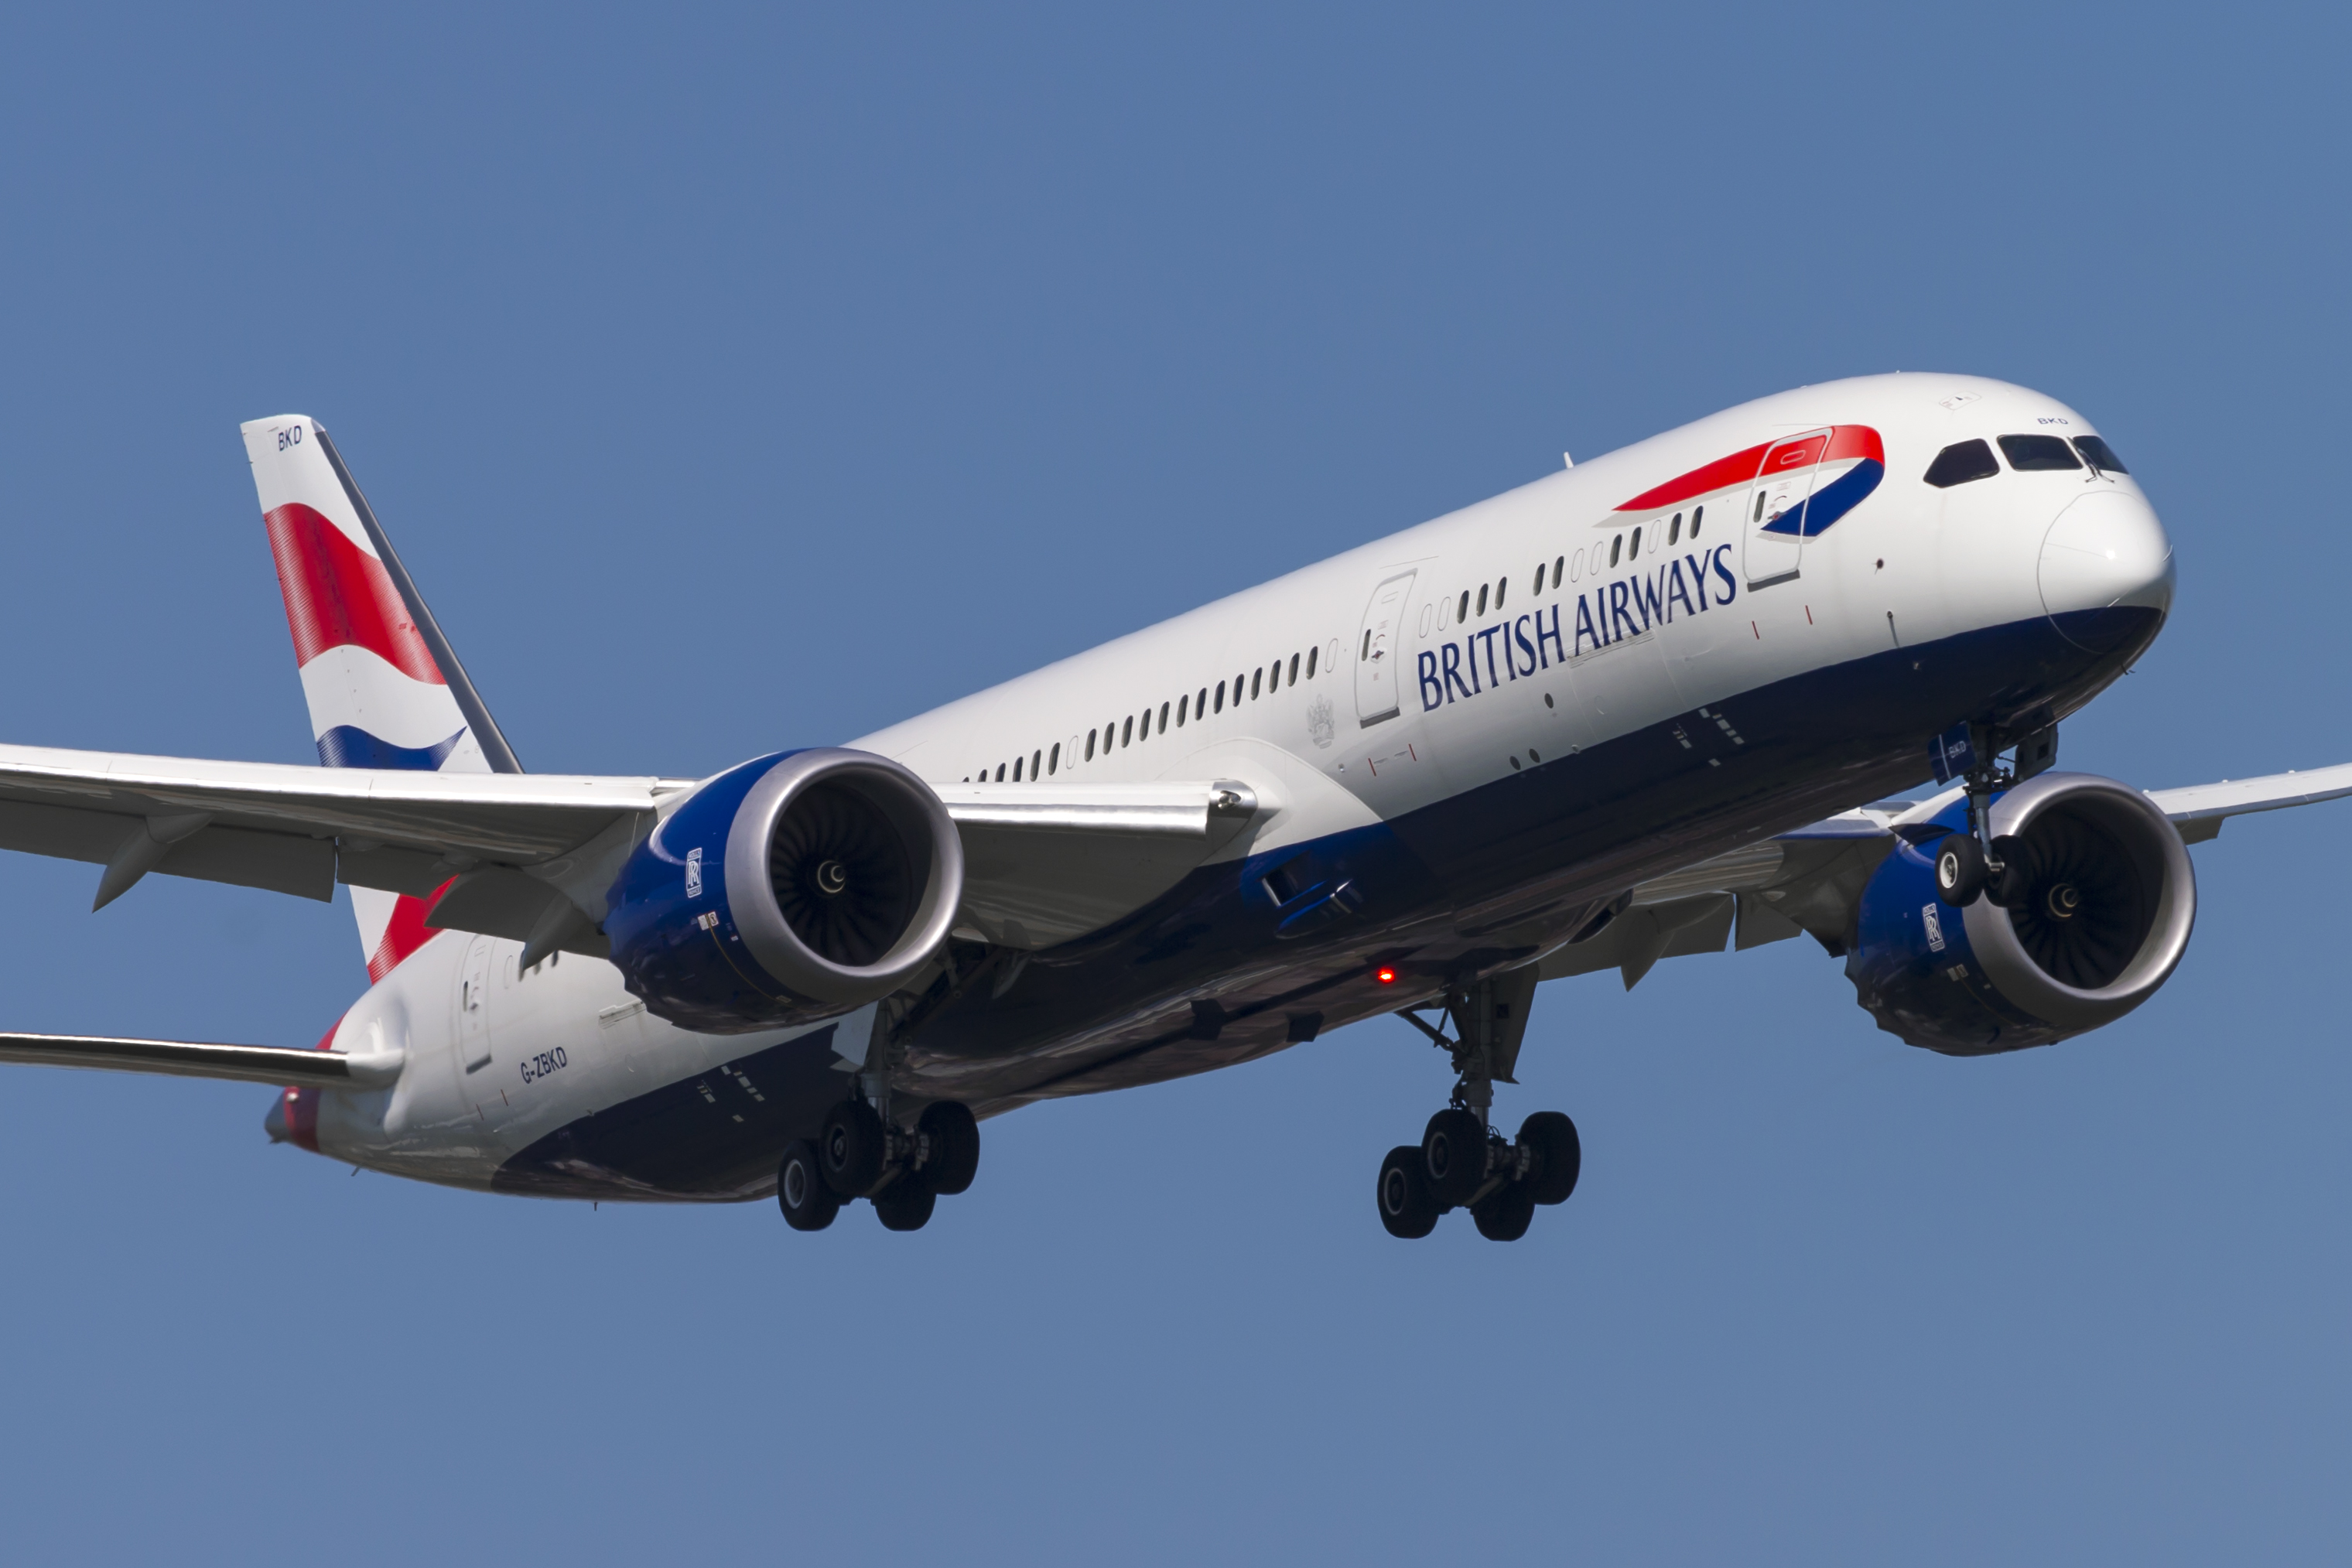 Den danske golfstjerne Thorbjørn Olesen havde ikke nogen heldig flyvning med British Airways fra Nashville til London, hvor BA benytter B787 Dreamliners på rute. (Arkivfoto: © Thorbjørn Brunander Sund, Danish Aviation Photo)